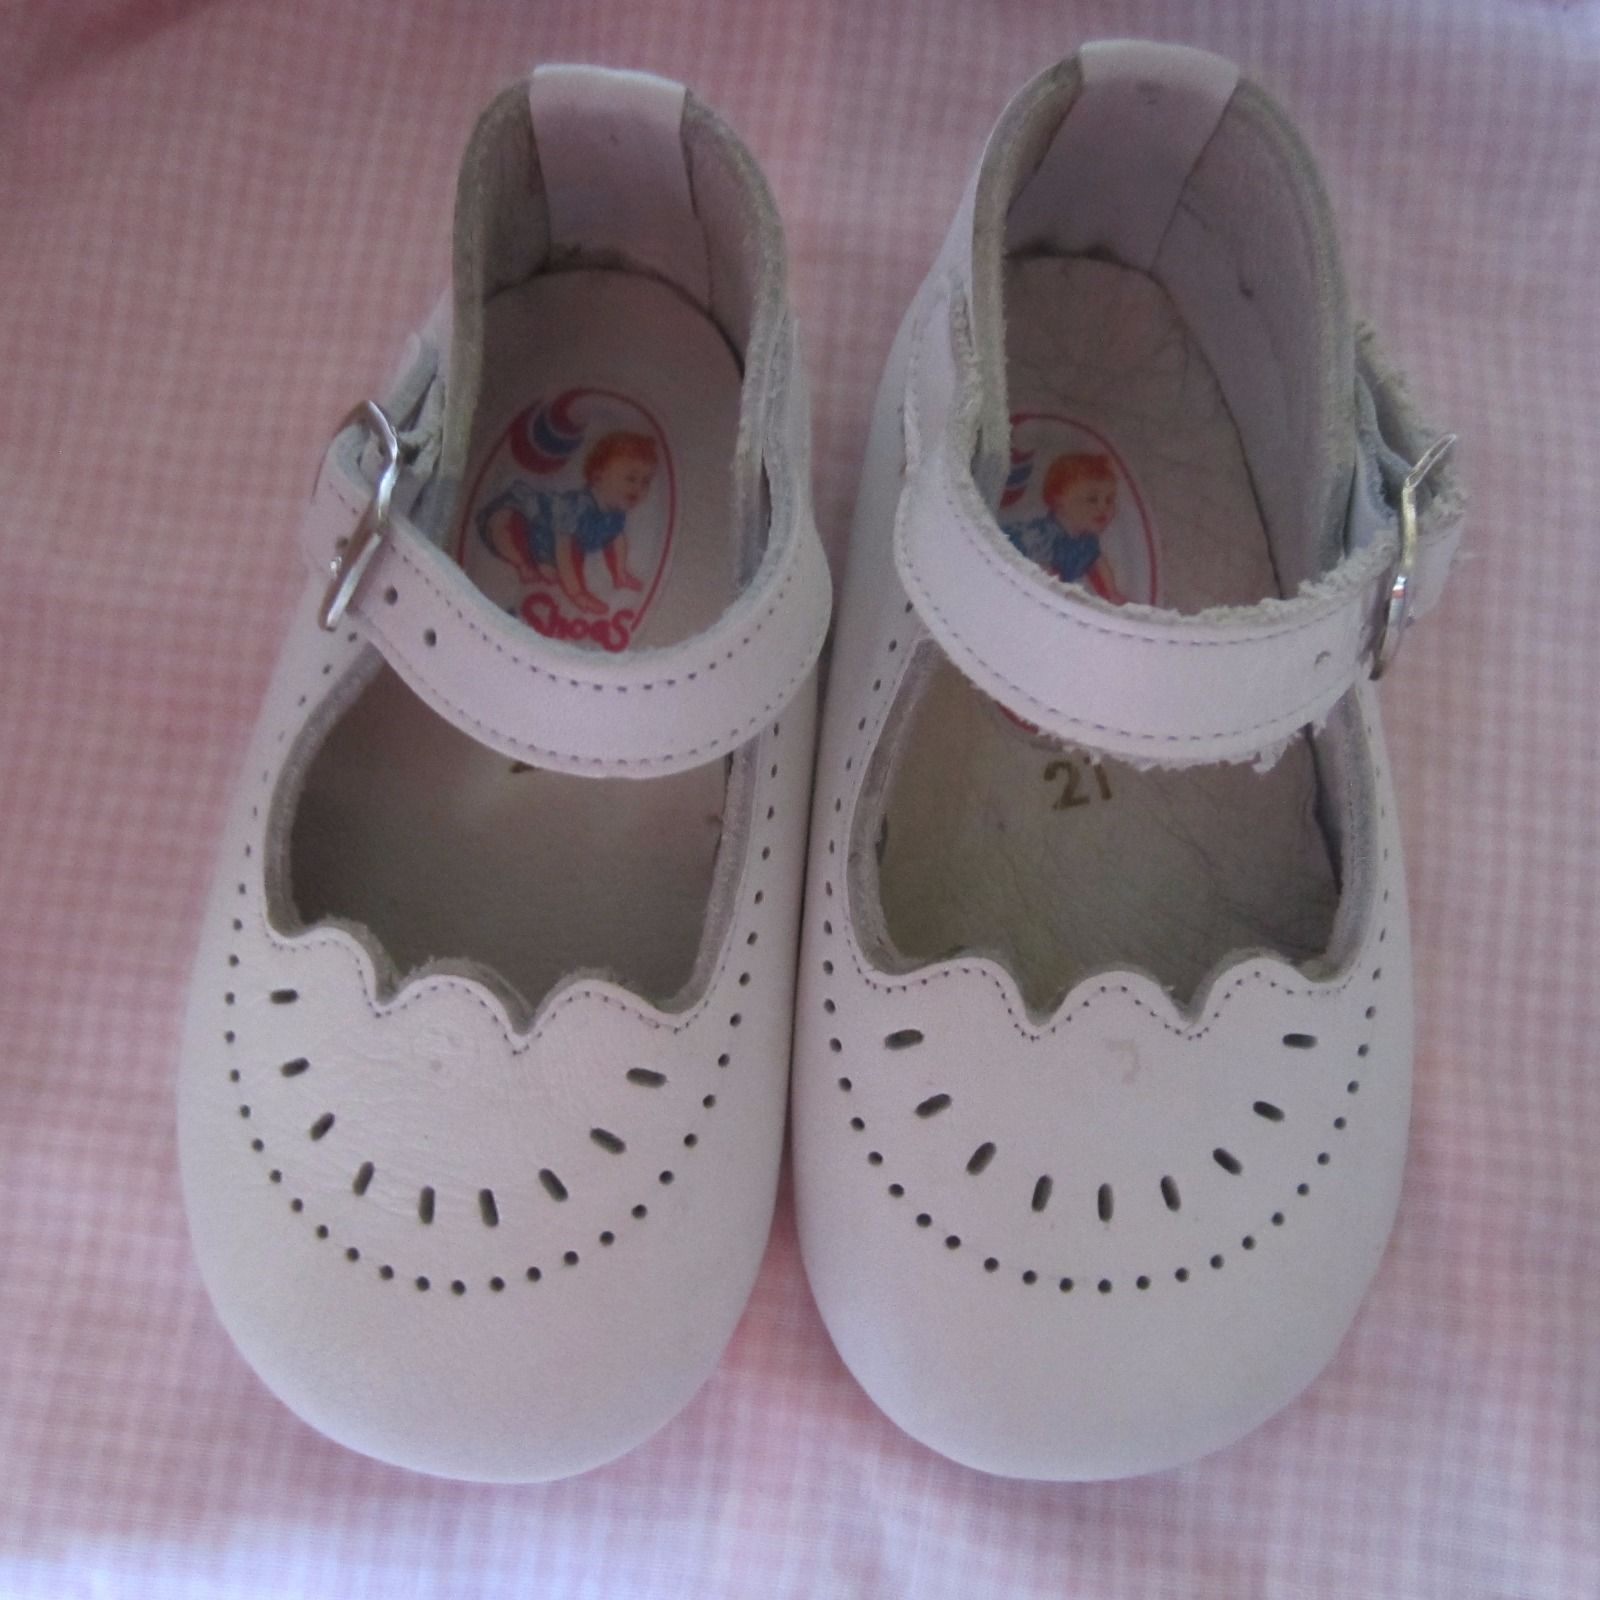 Vintage White Leather Shoes For Child Or Large Doll